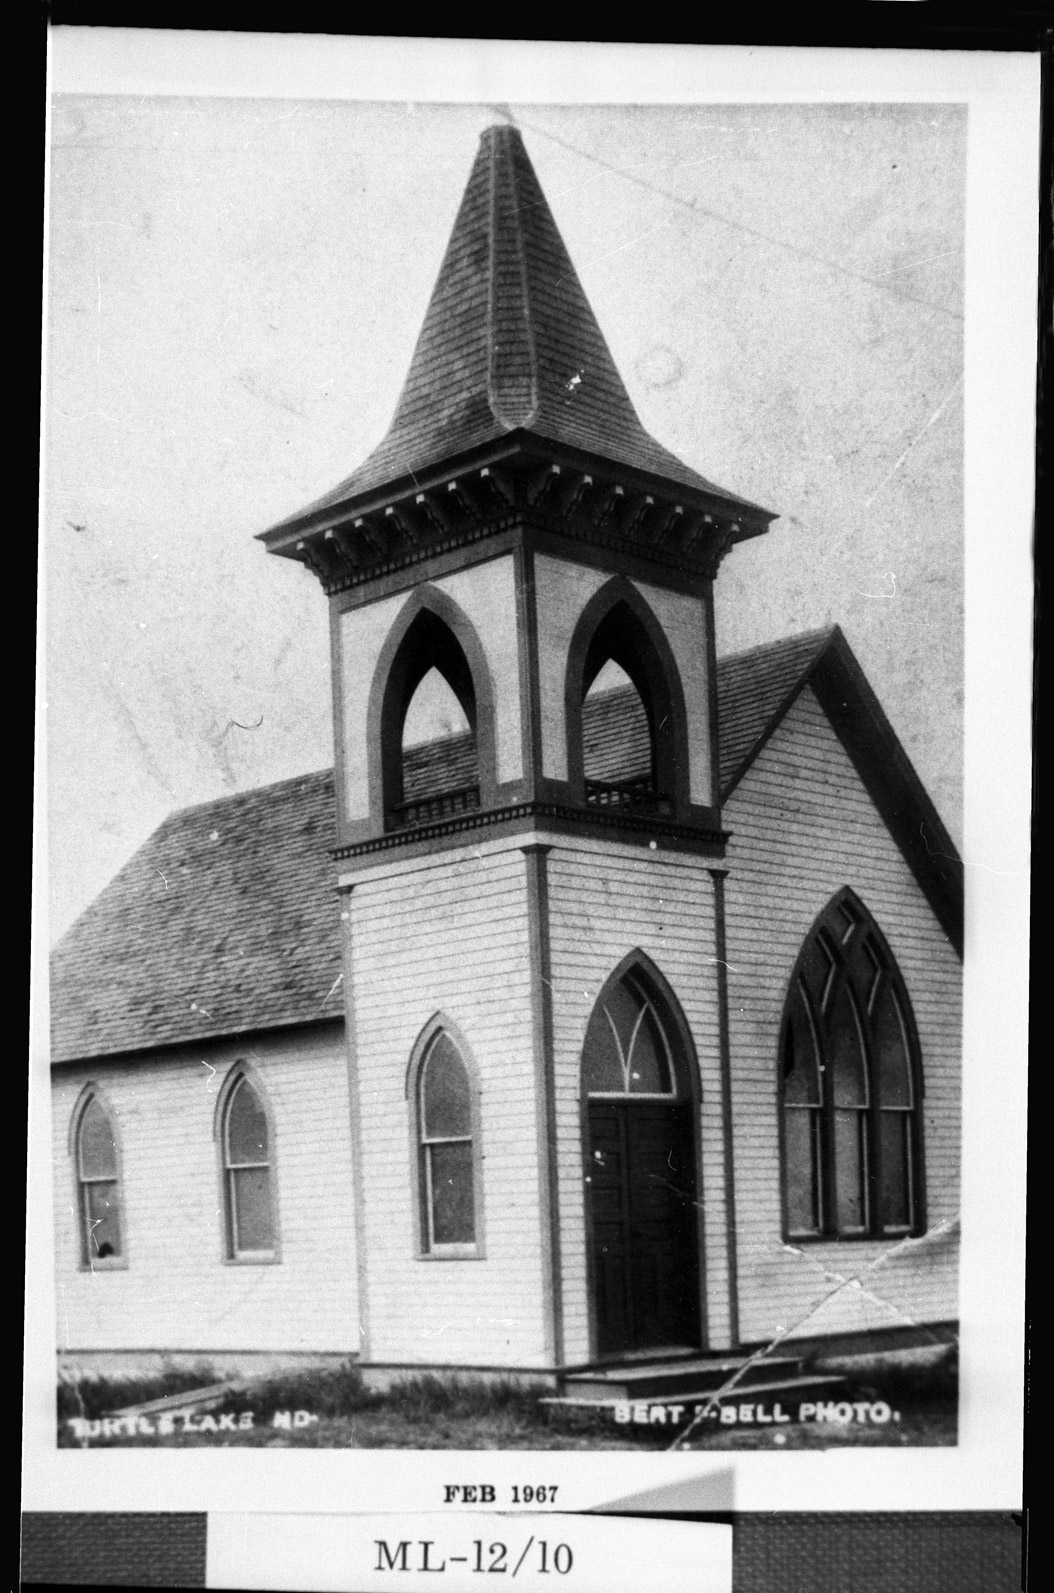 section 6 photo essay north dakota studies 1900 0032 ml 12 10 first baptist church turtle lake